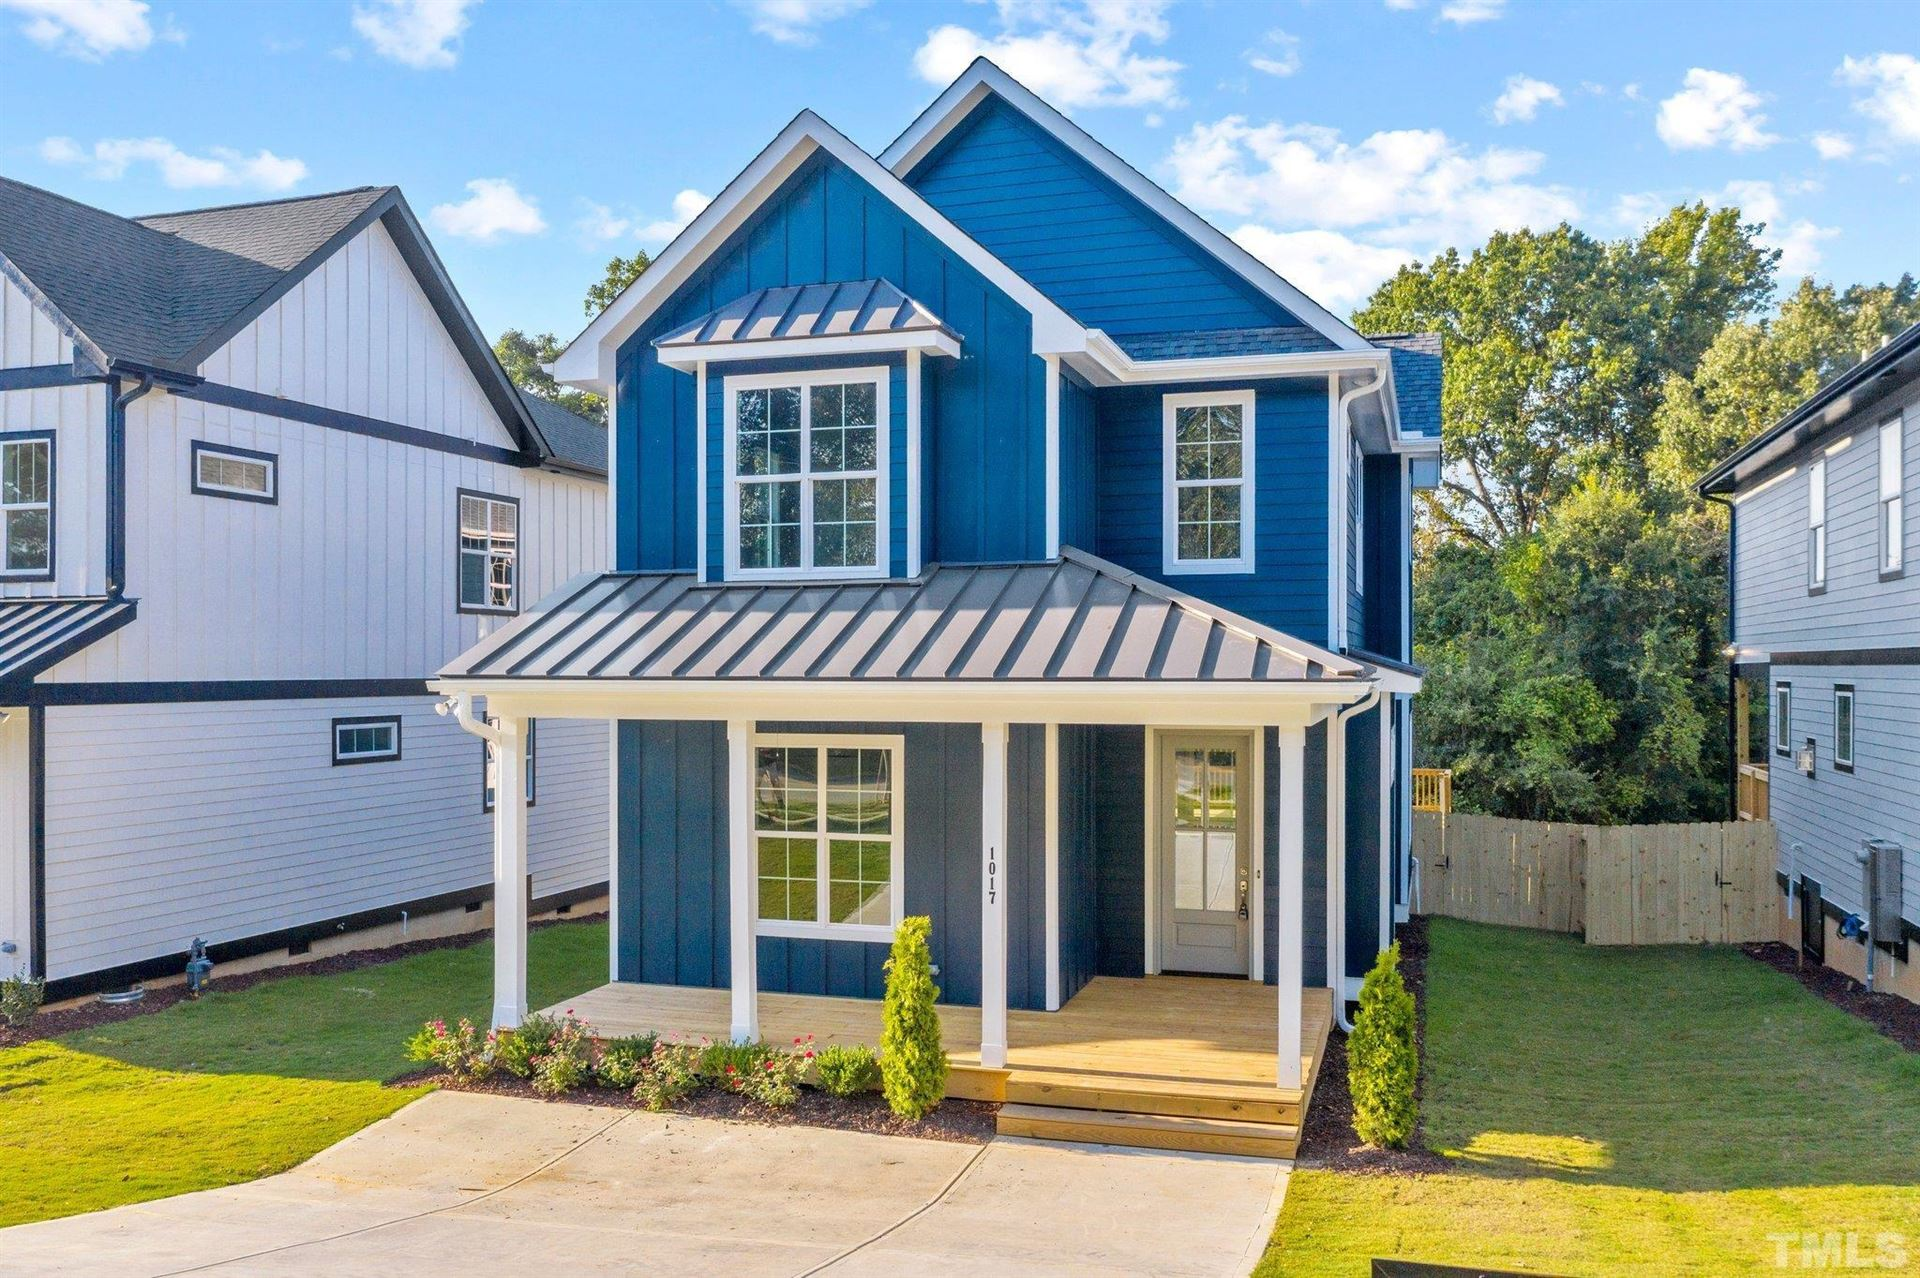 Photo of 1017 Glascock Street, Raleigh, NC 27610 (MLS # 2409625)